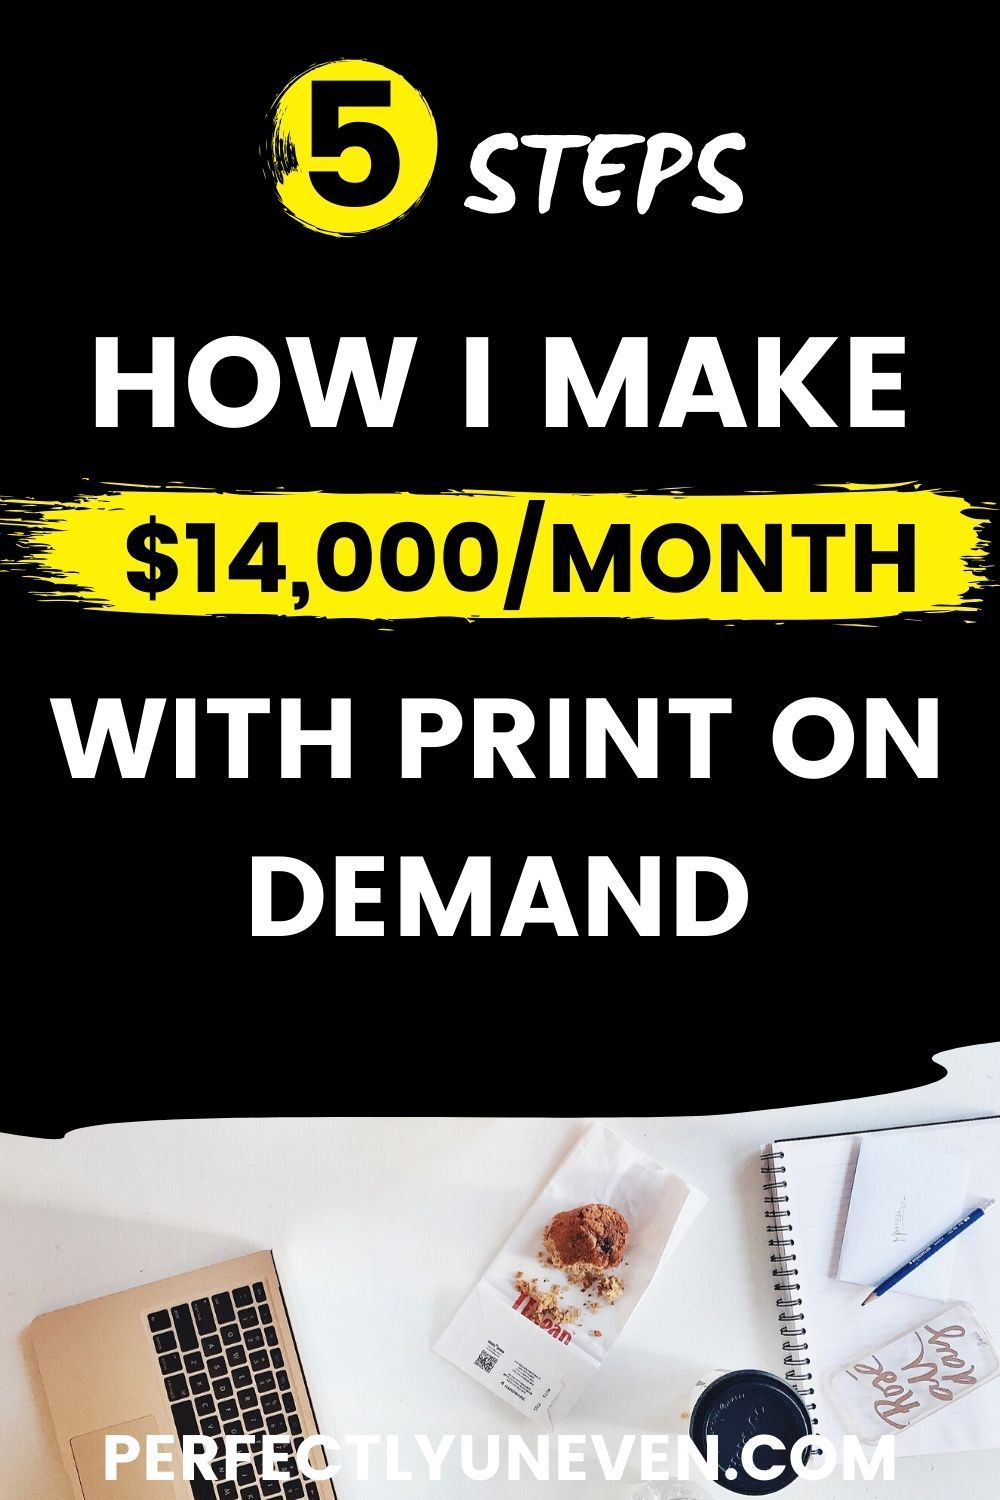 Ultimate Guide What Is Print On Demand 12,000K/Month in